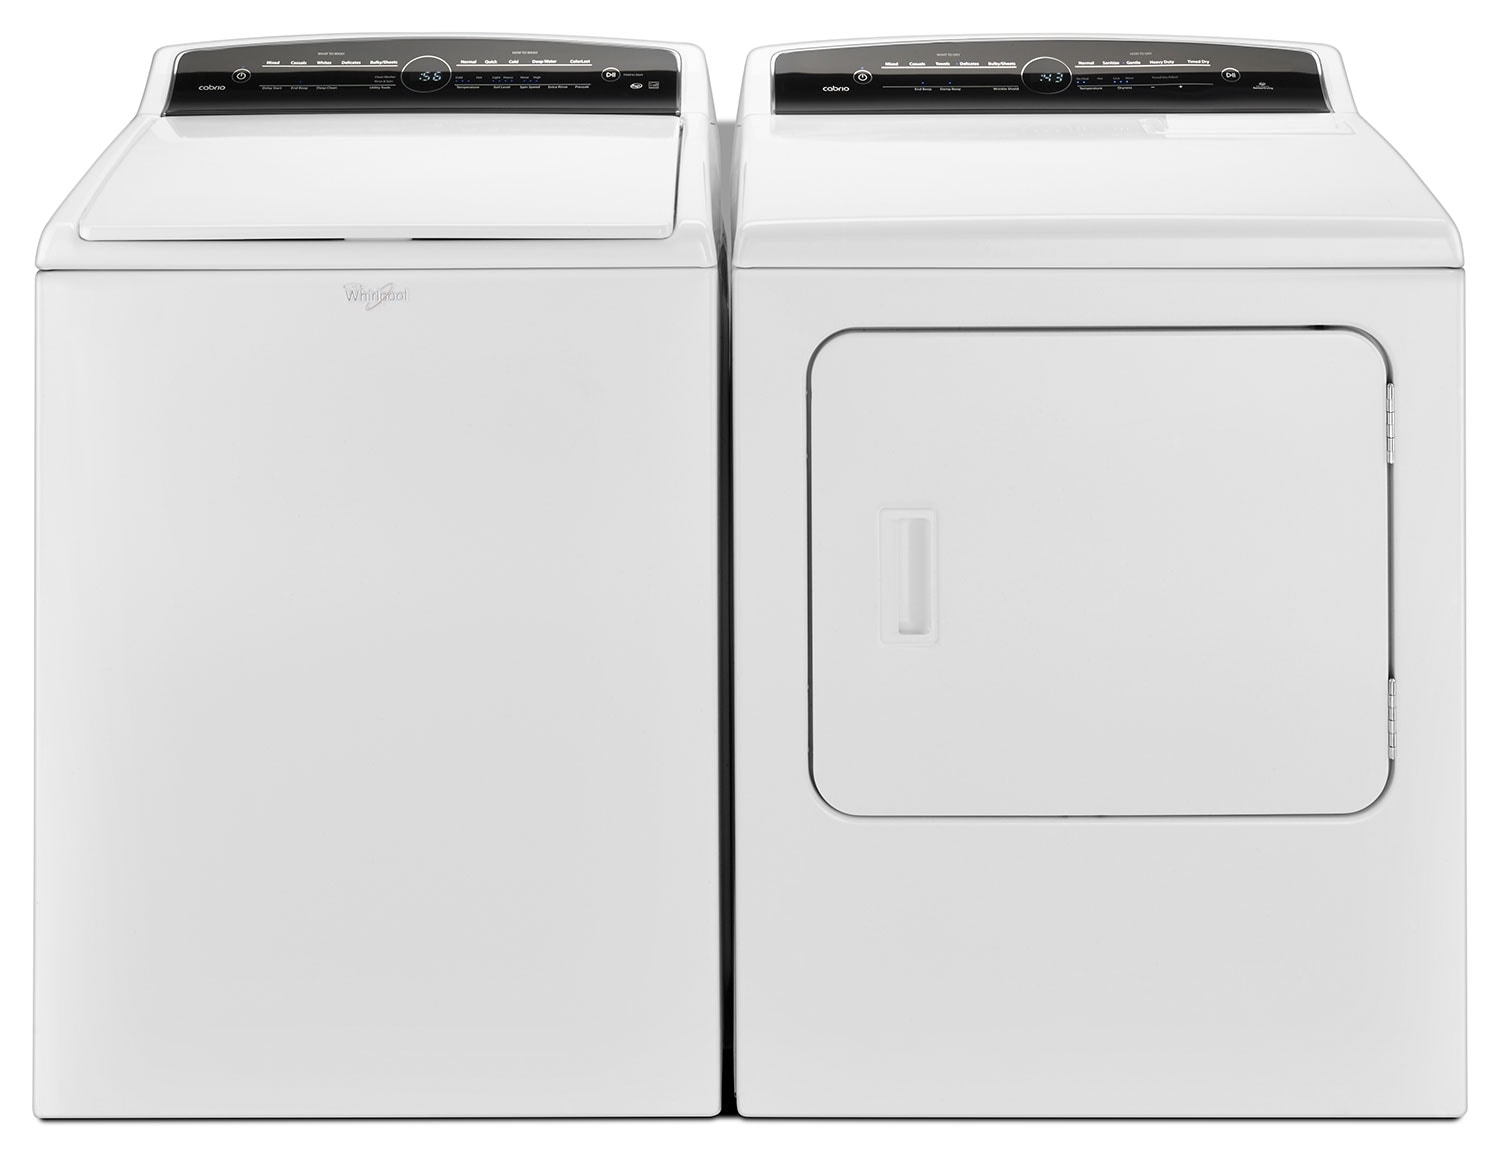 Whirlpool® Cabrio® 5.5 Cu. Ft. Top-Load Washer and 7.0 Cu. Ft. Gas Dryer - White